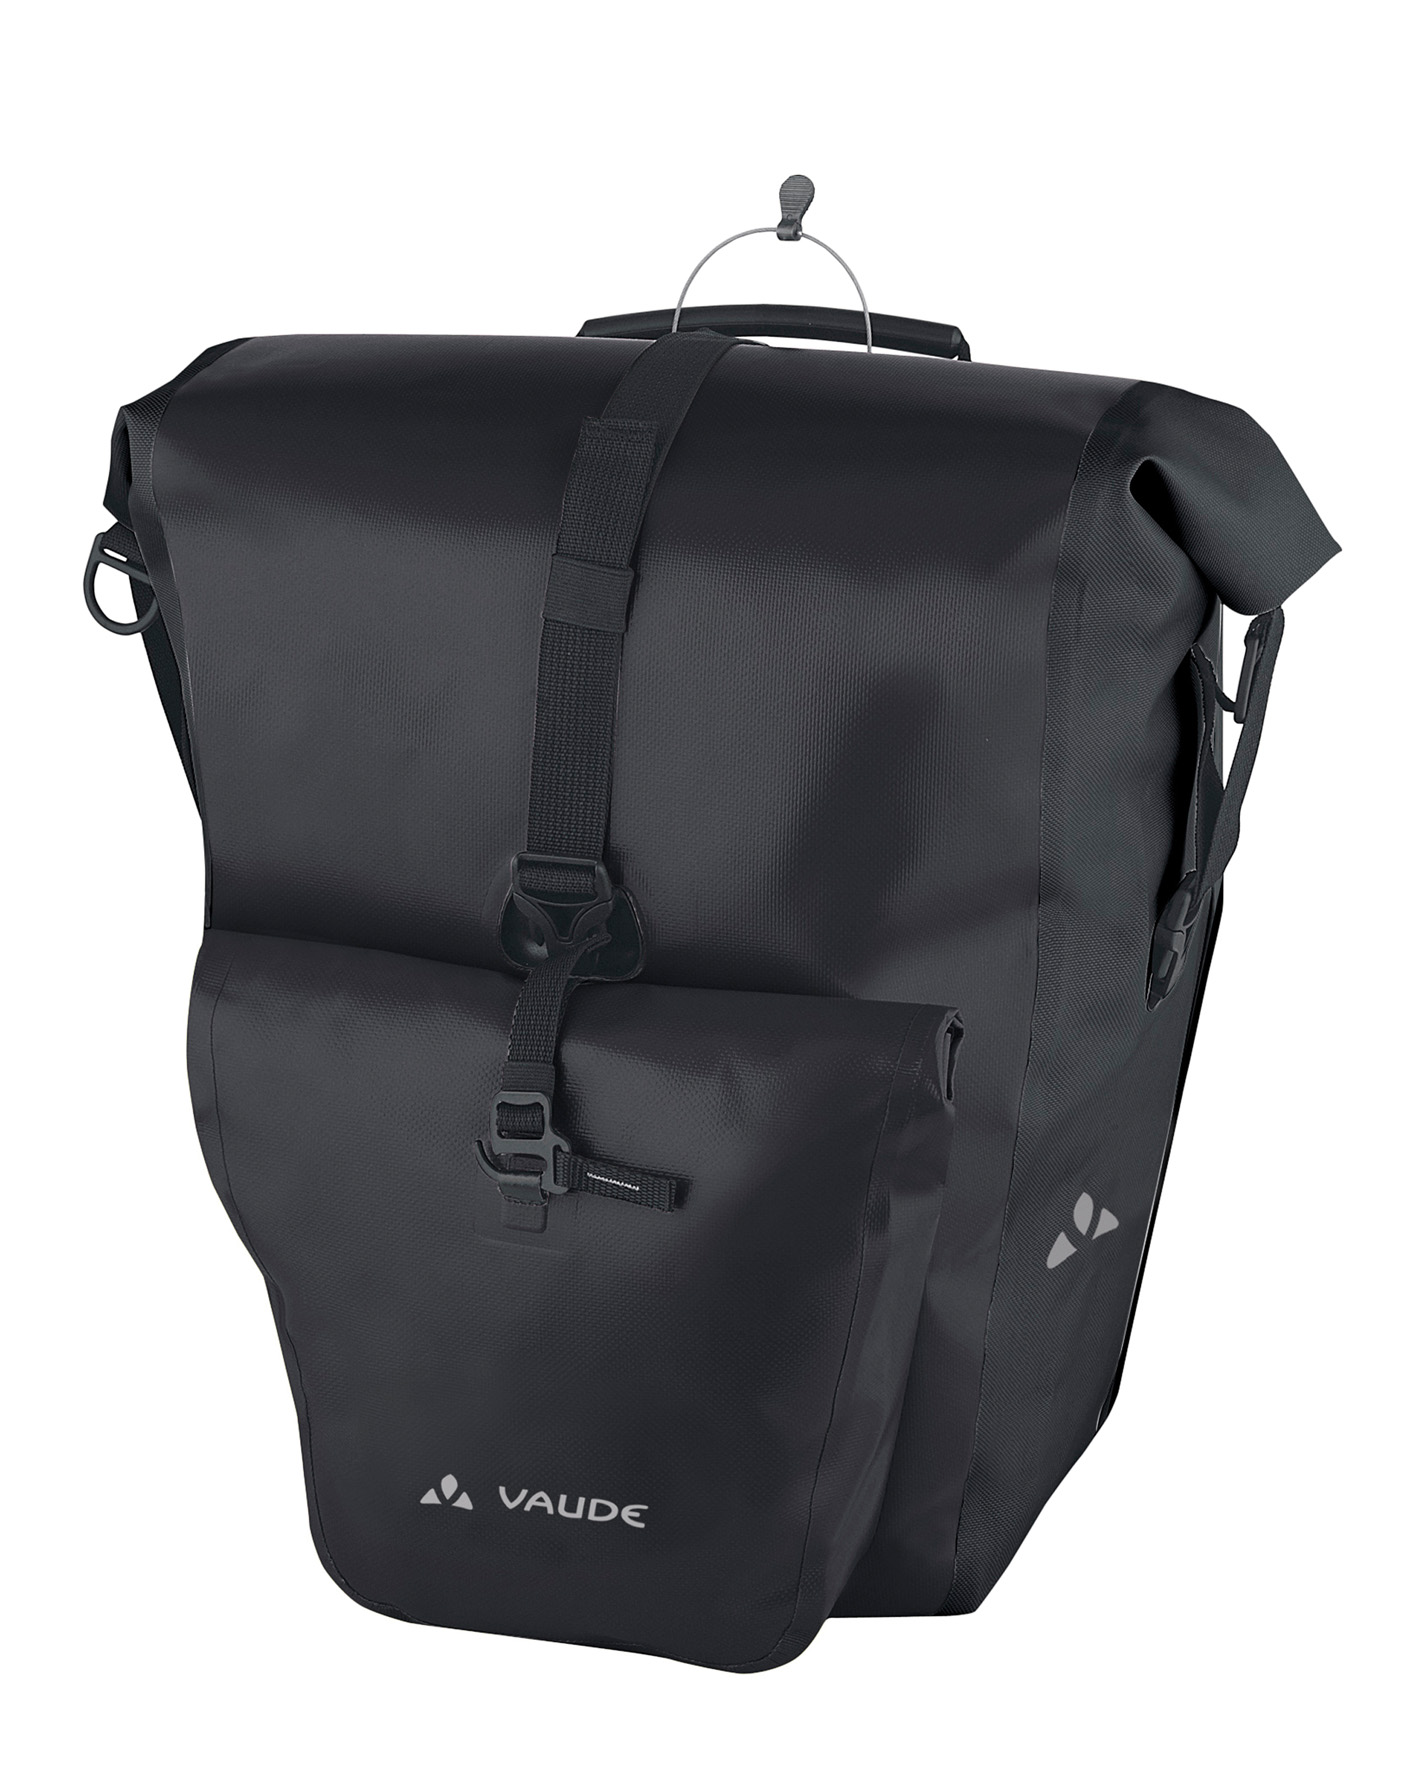 VAUDE Aqua Back Plus black  - schneider-sports